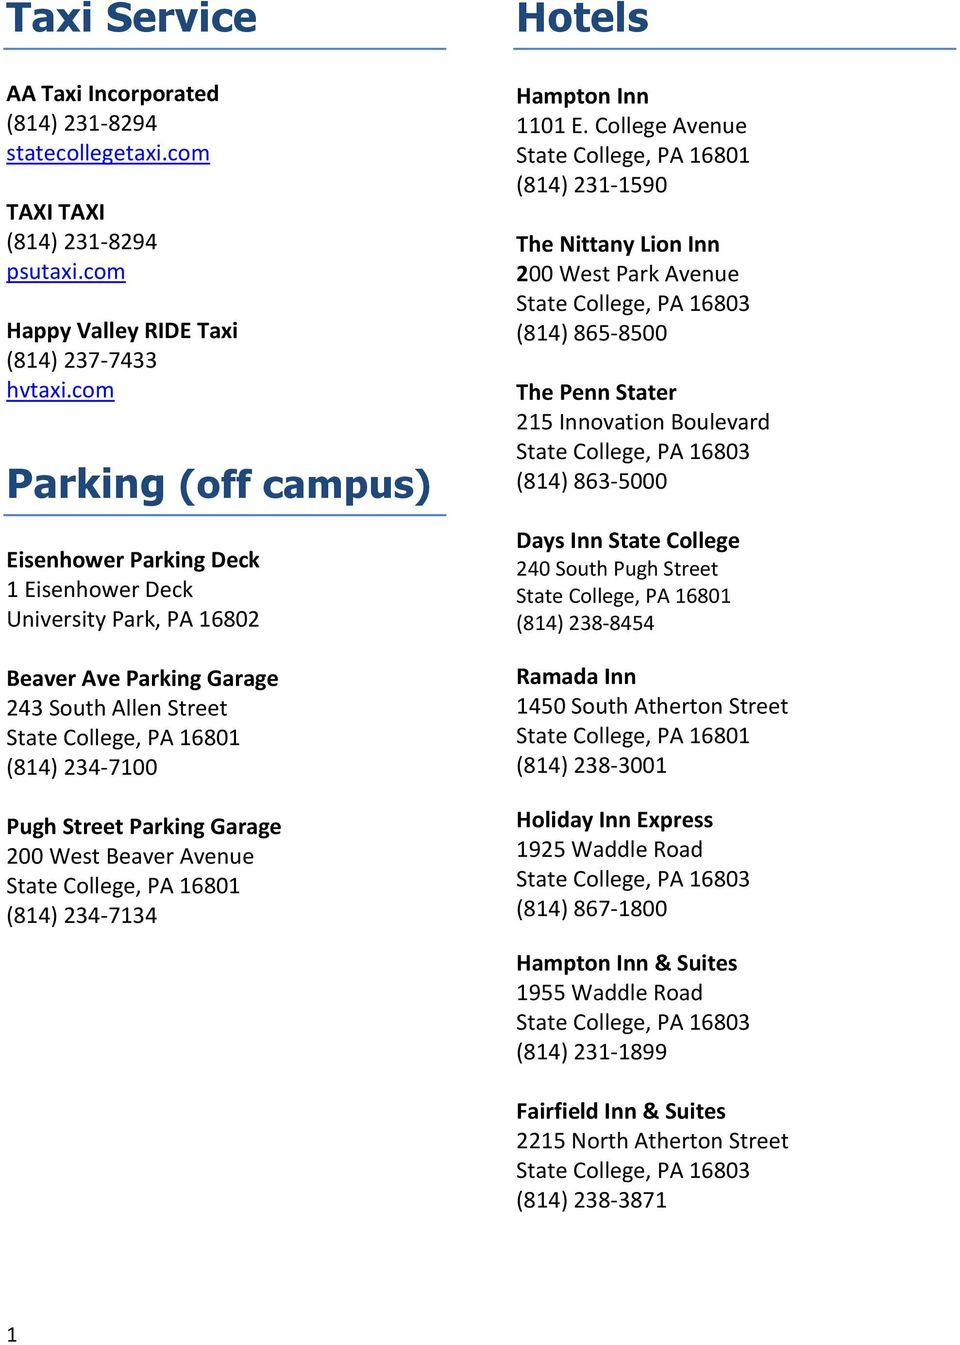 Hotels Taxi Service Parking Off Campus Aa Taxi Incorporated 814